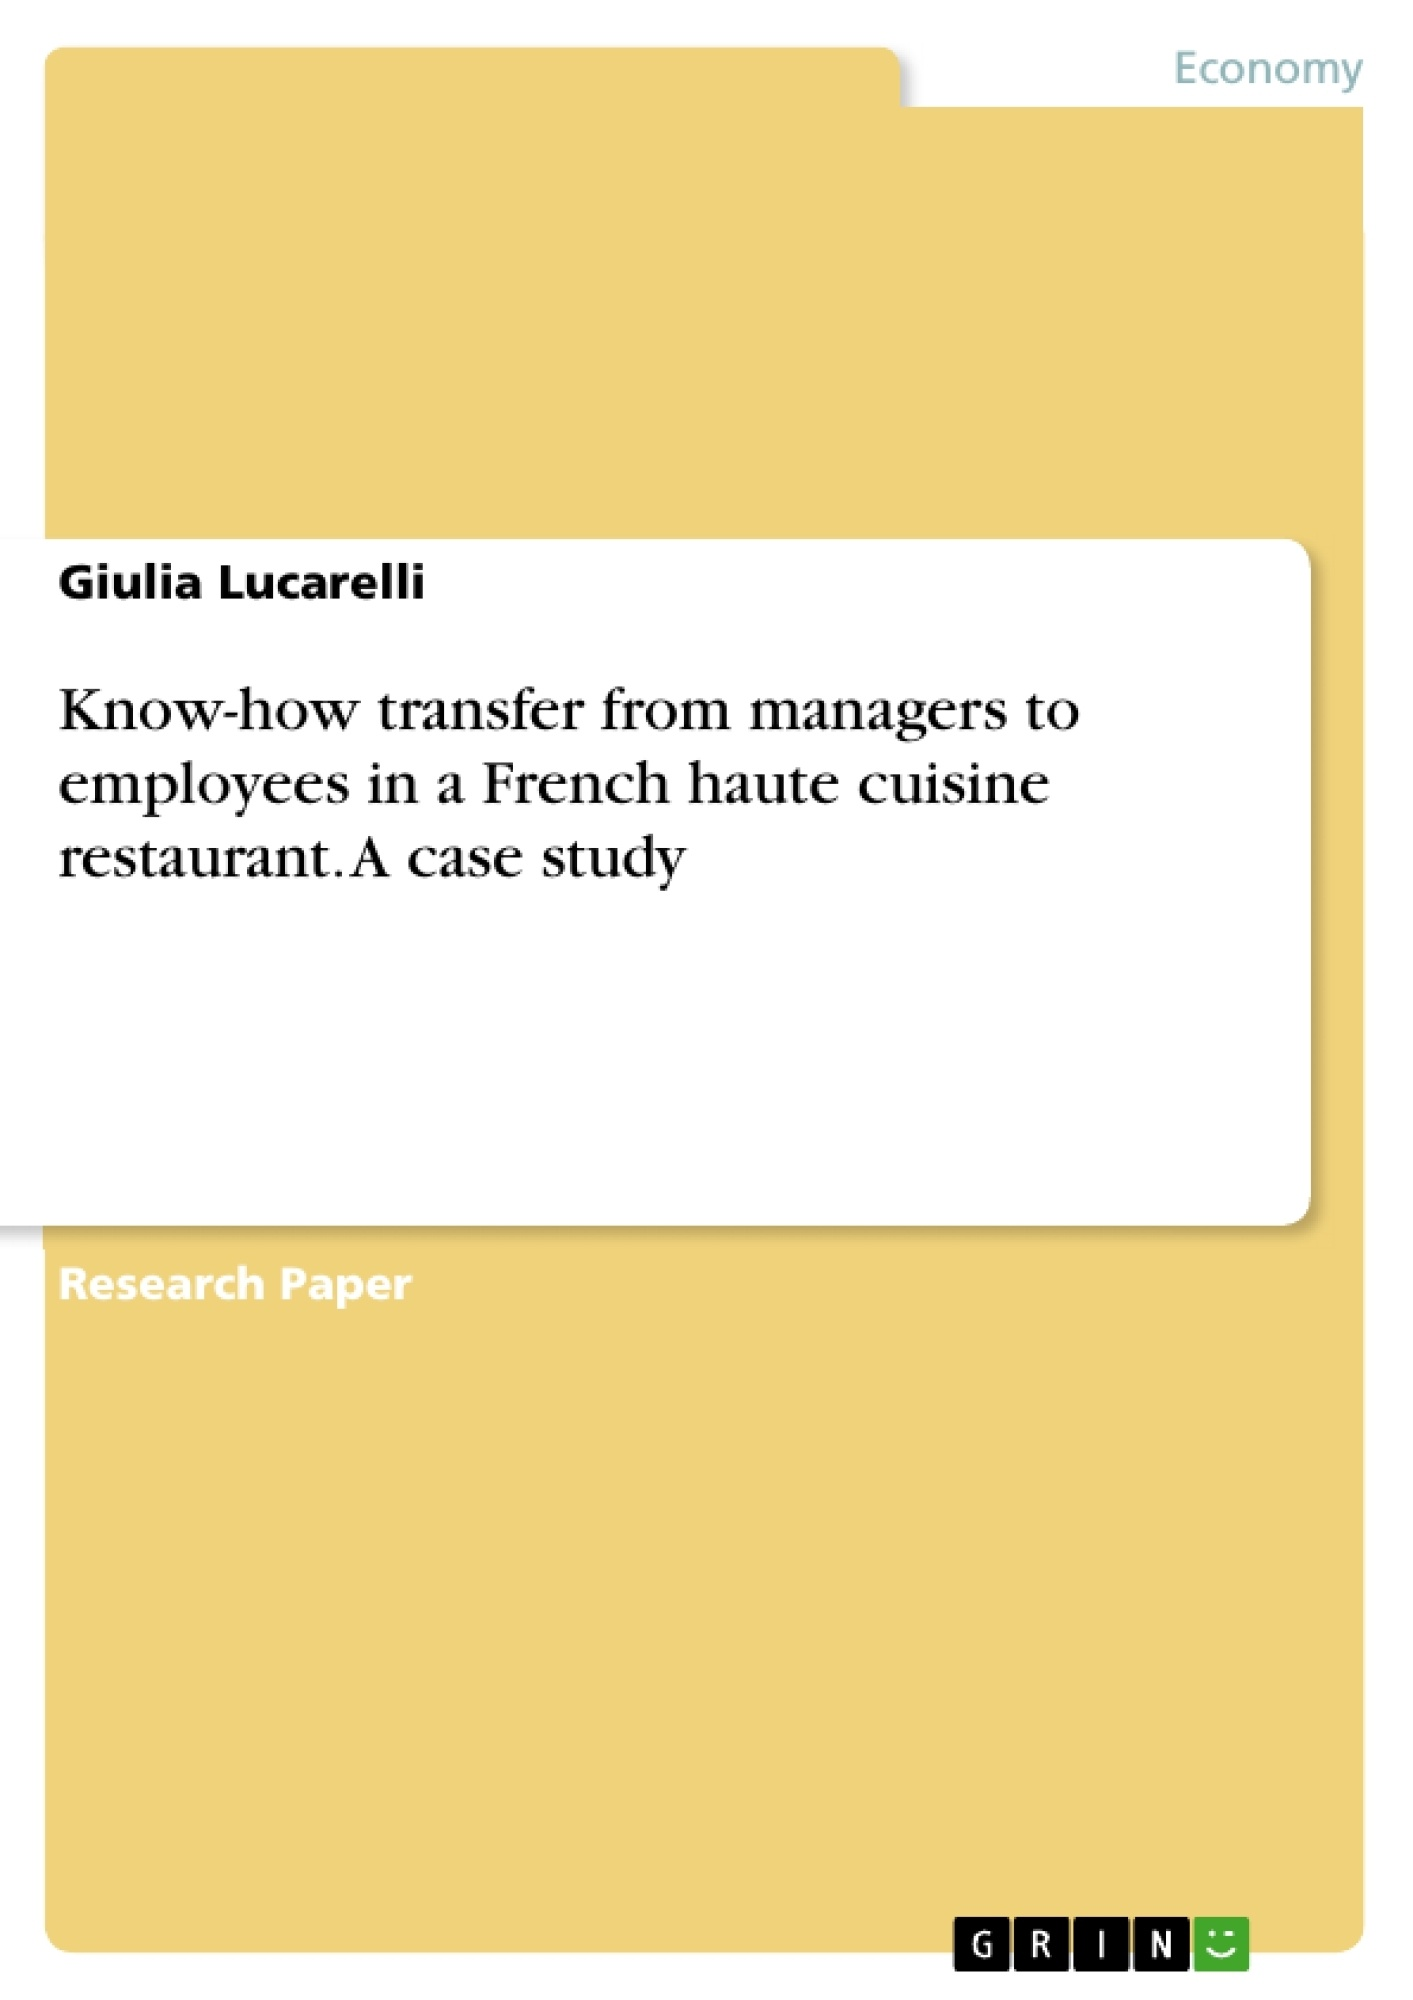 Title: Know-how transfer from managers to employees in a French haute cuisine restaurant. A case study